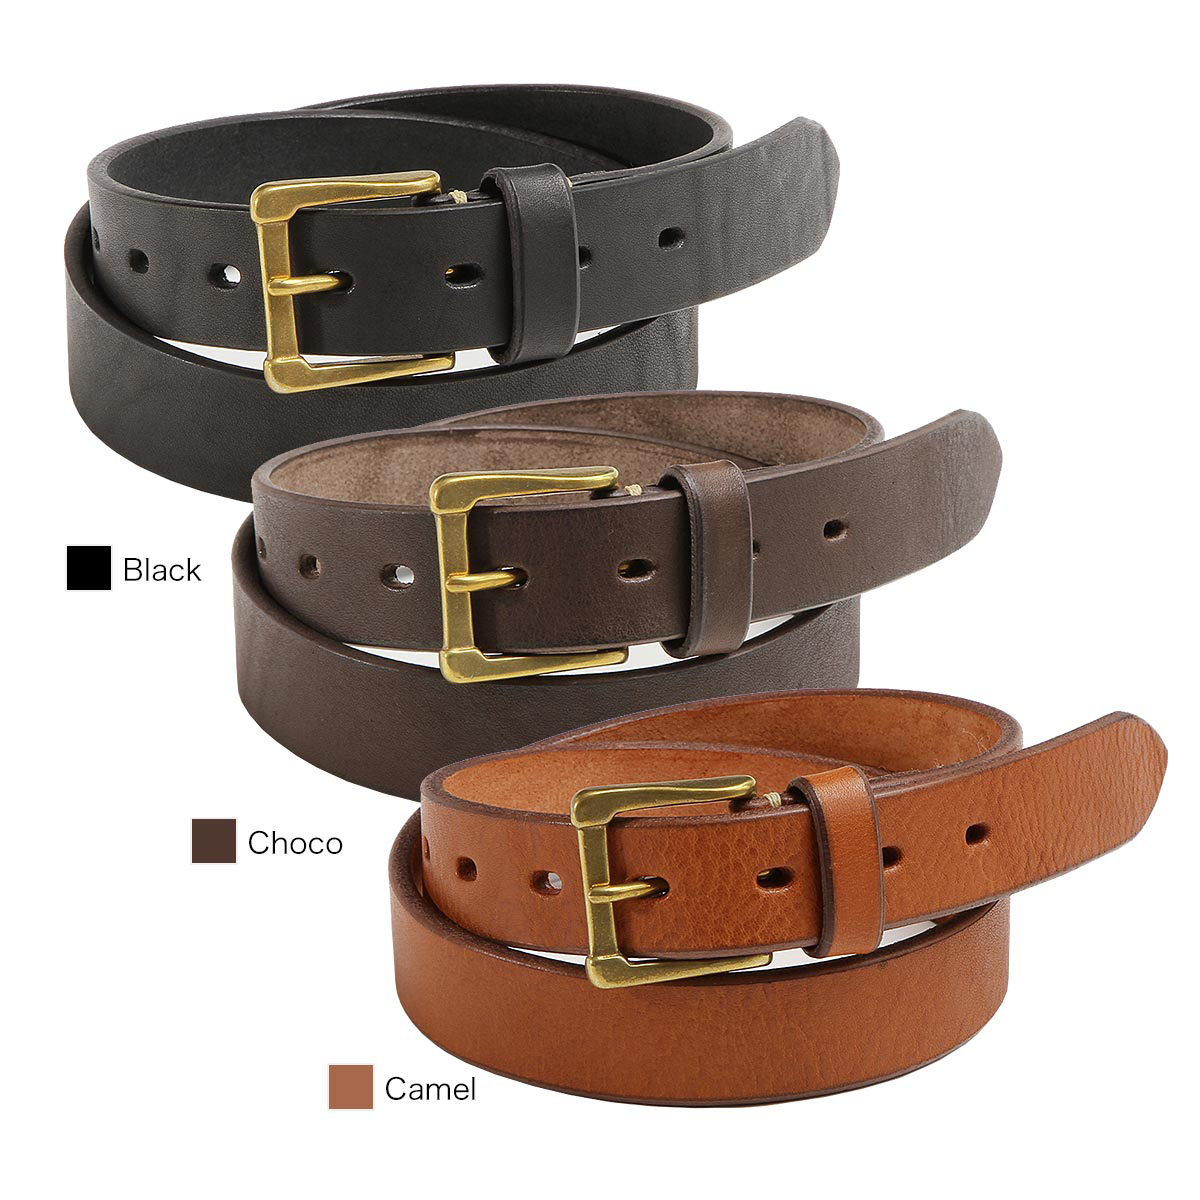 【正規販売店】スロウ ベルト S plain belt -tochigileather 30mm belt- SLOW HS23E-Ssize